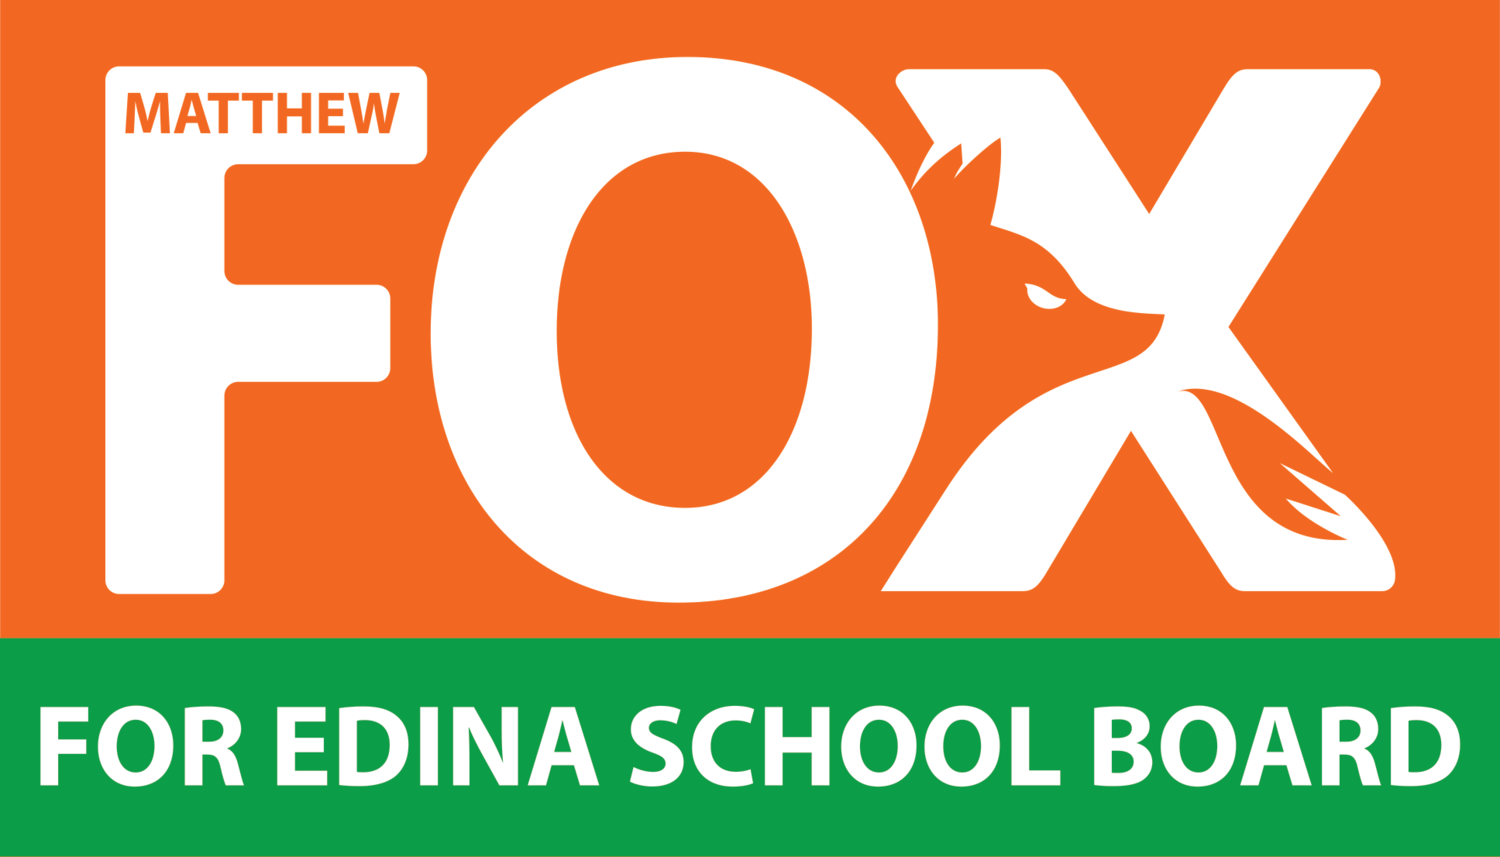 Matthew Fox for Edina School Board